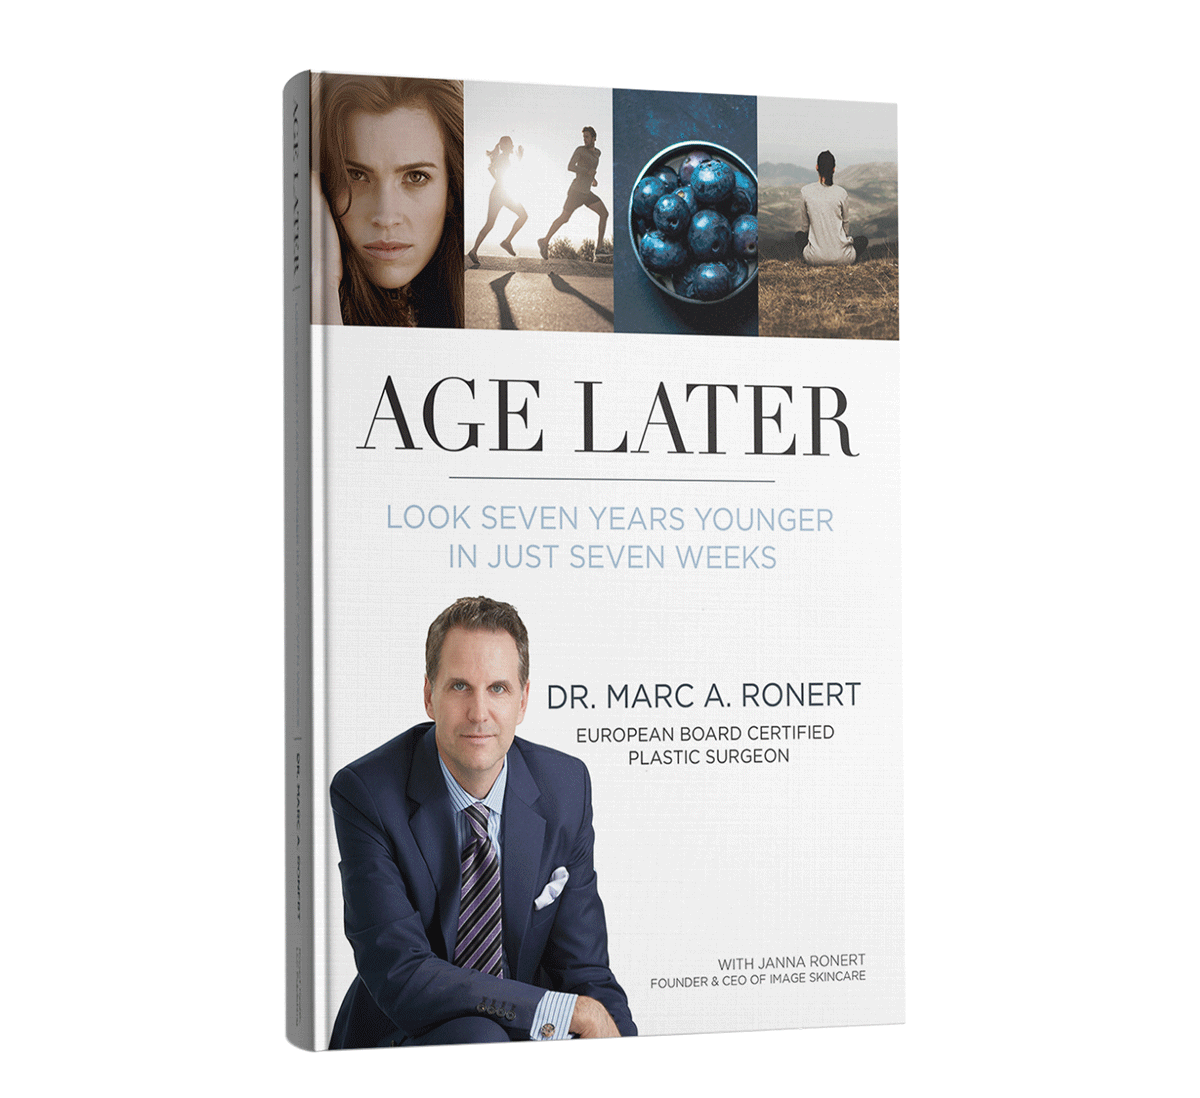 Age later: The Book